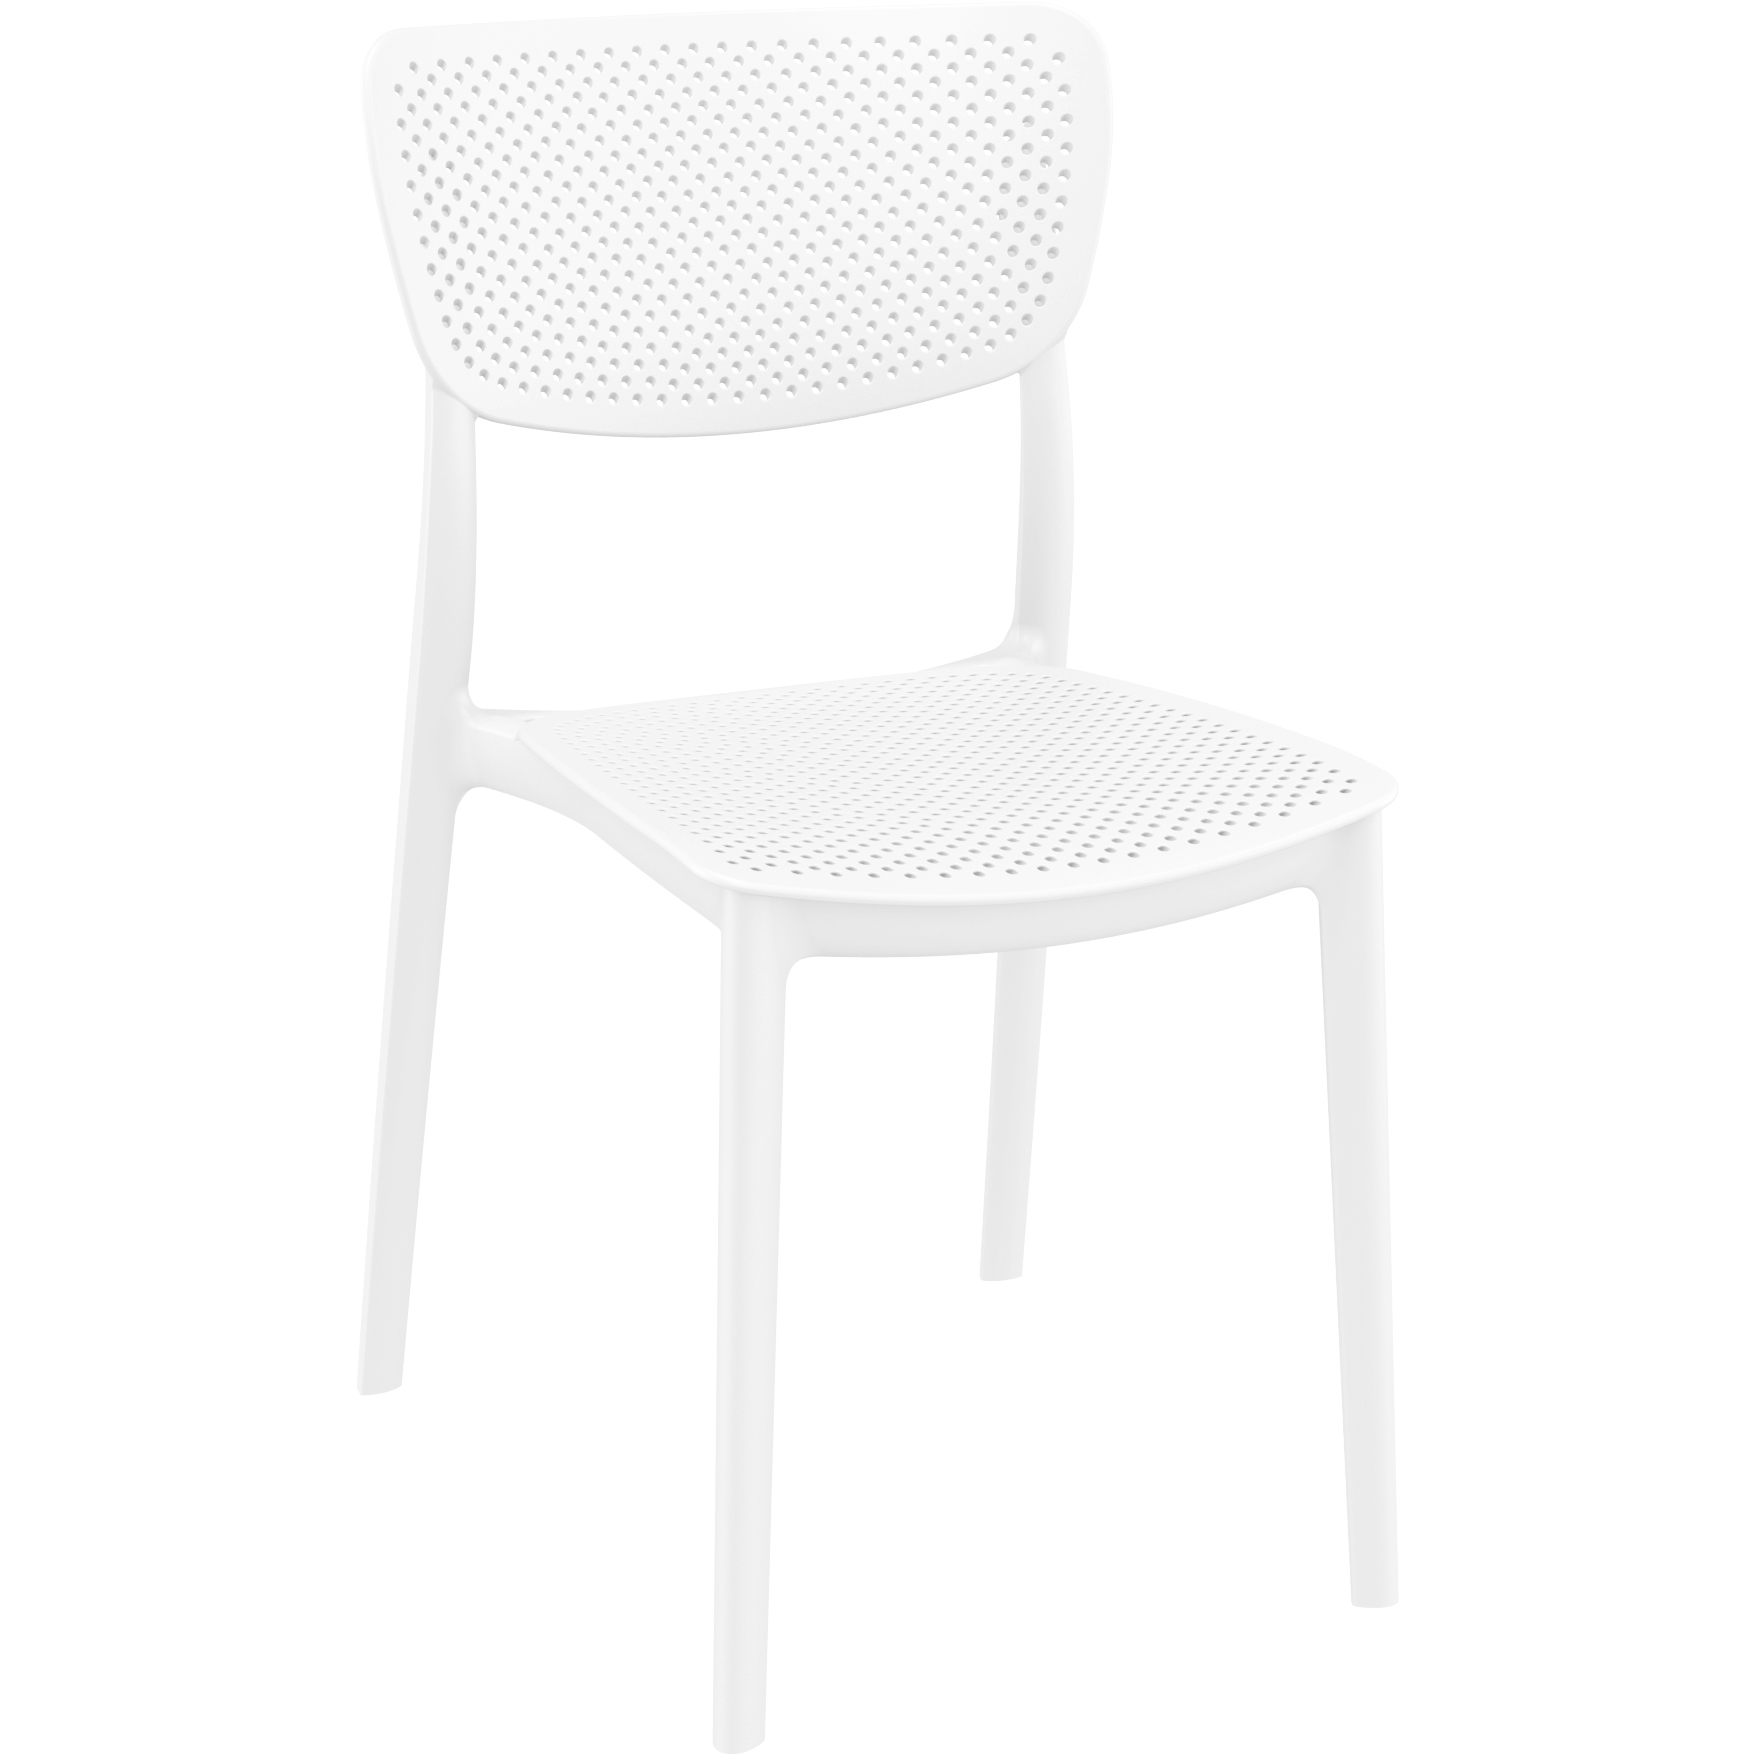 Lucy Chair - White